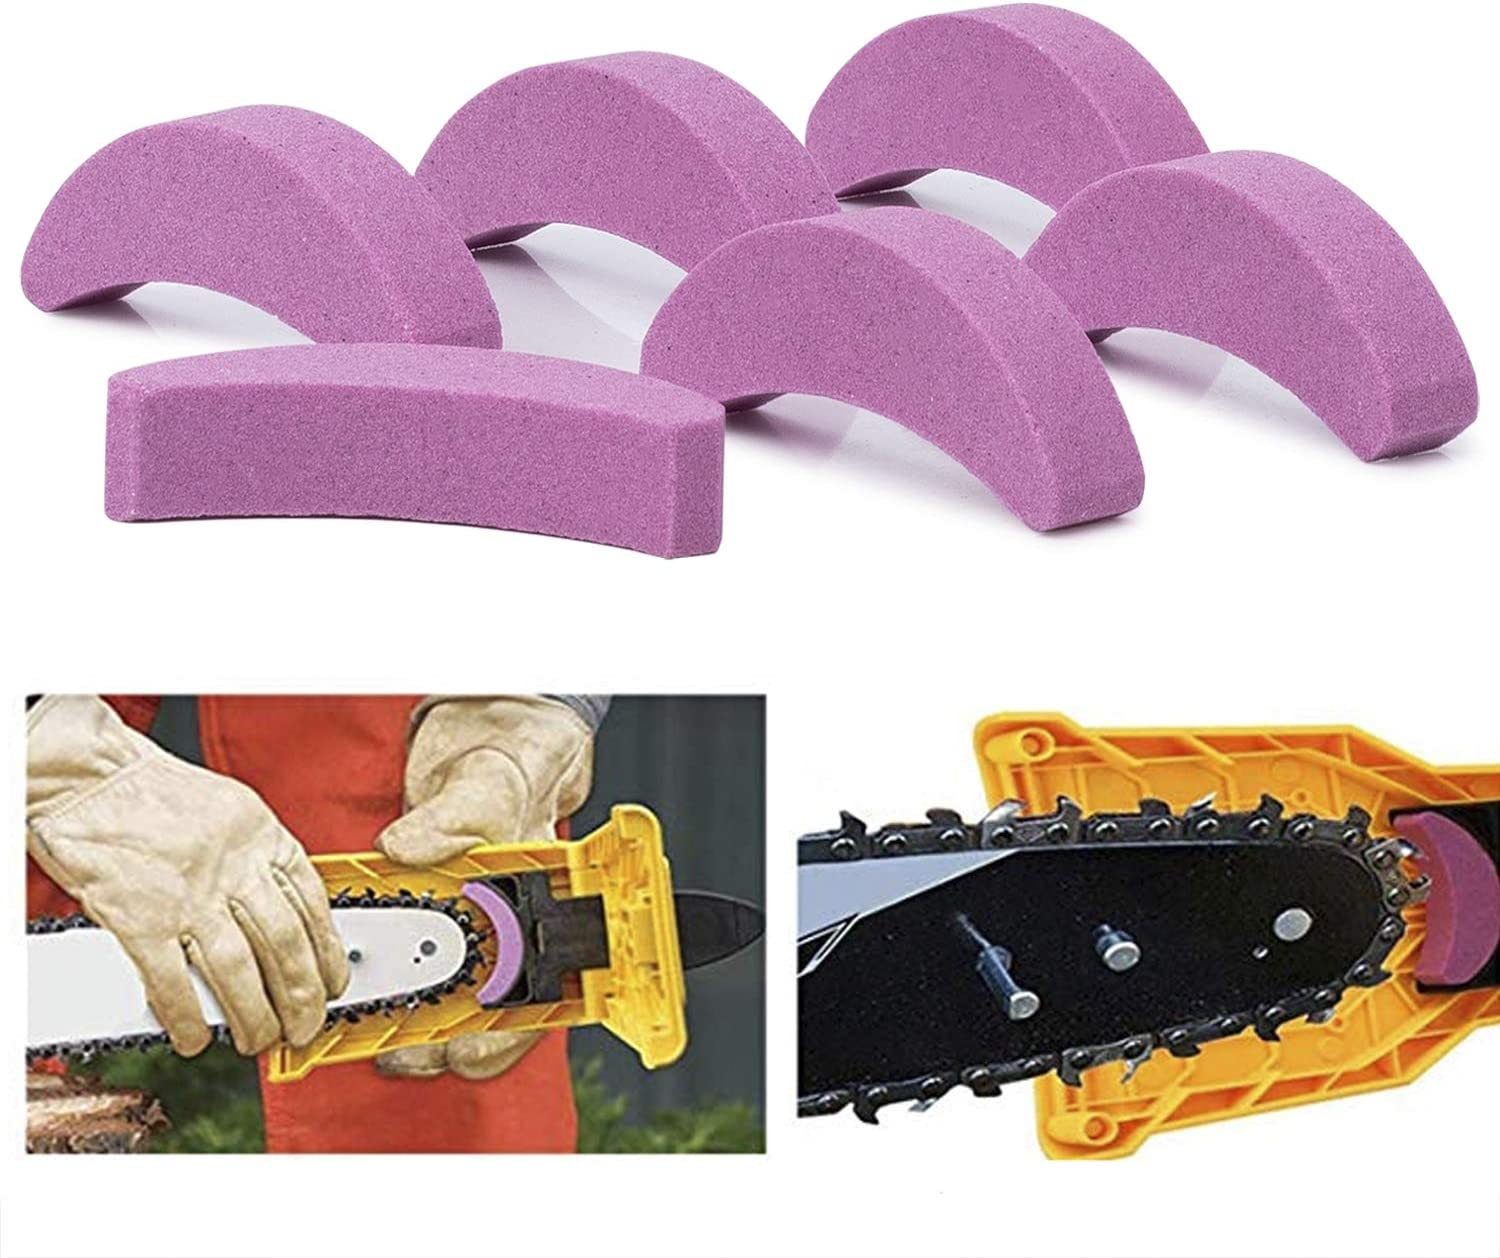 Sharpening Stone Whetstone Replacement for Chainsaw Teeth Sharpener Bar-Mount Chainsaw Chain Sharpening System 6Pcs